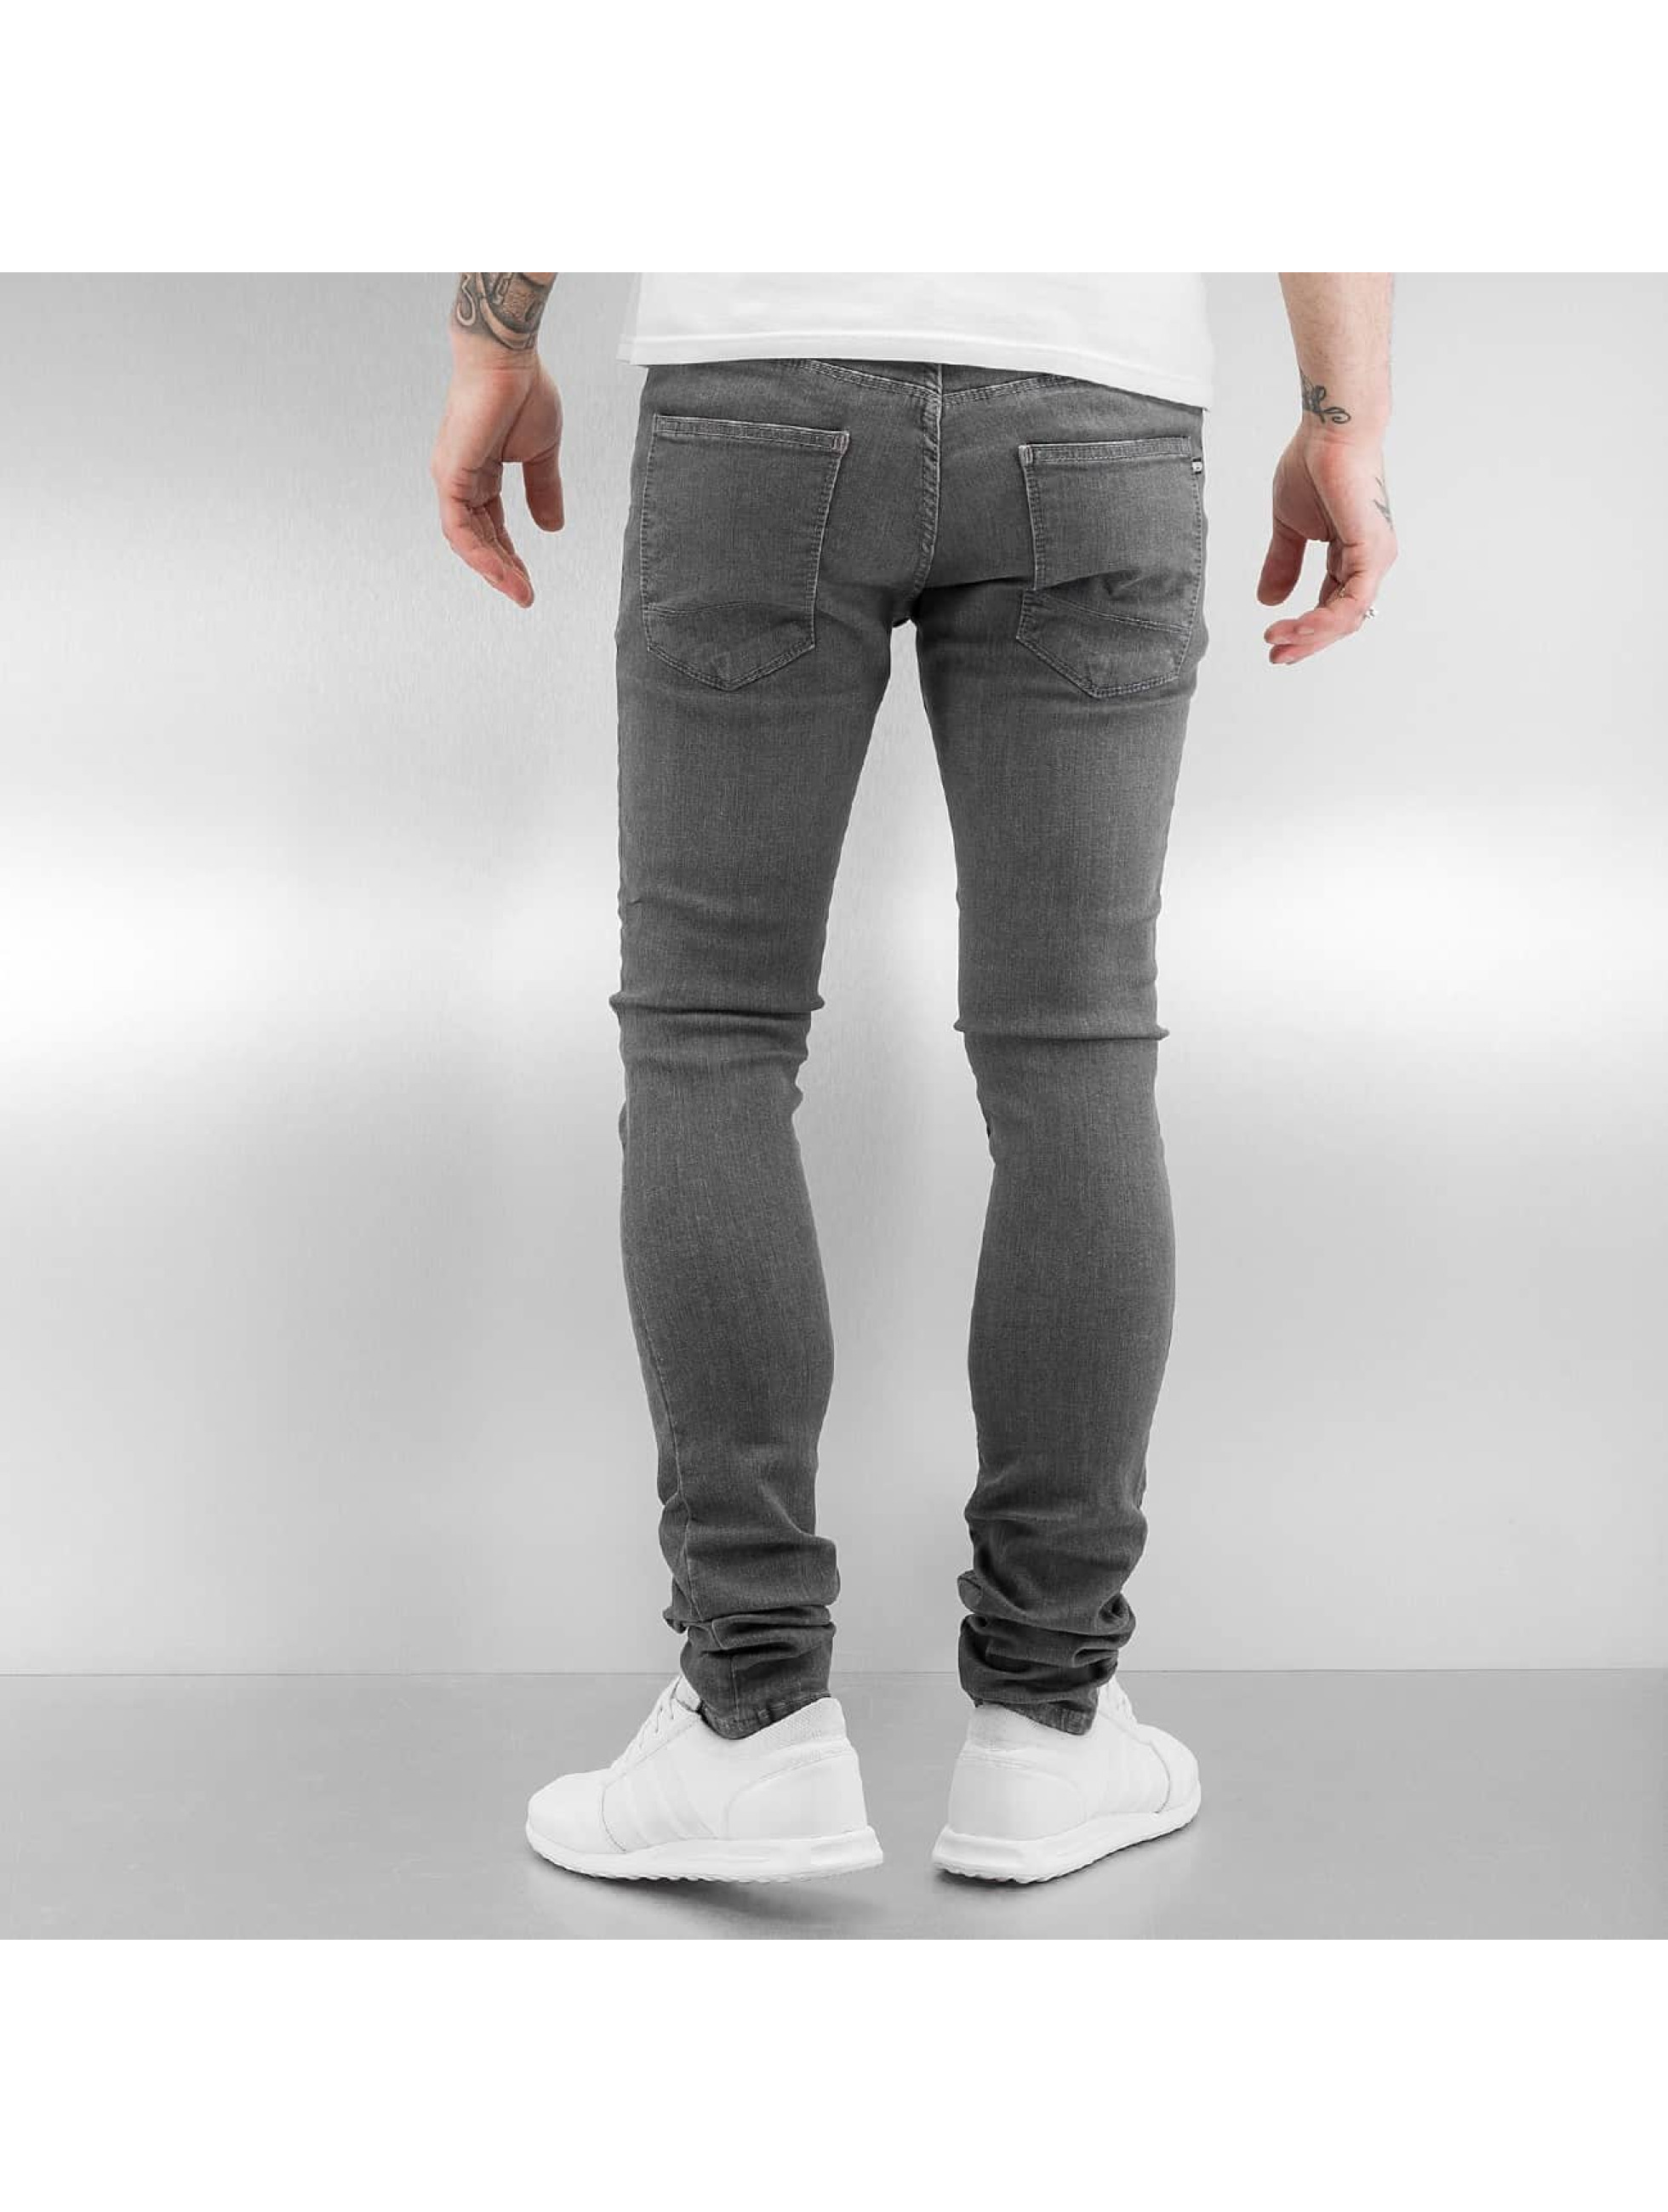 reell jeans herren jeans skinny jeans radar stretch super slim fit ebay. Black Bedroom Furniture Sets. Home Design Ideas